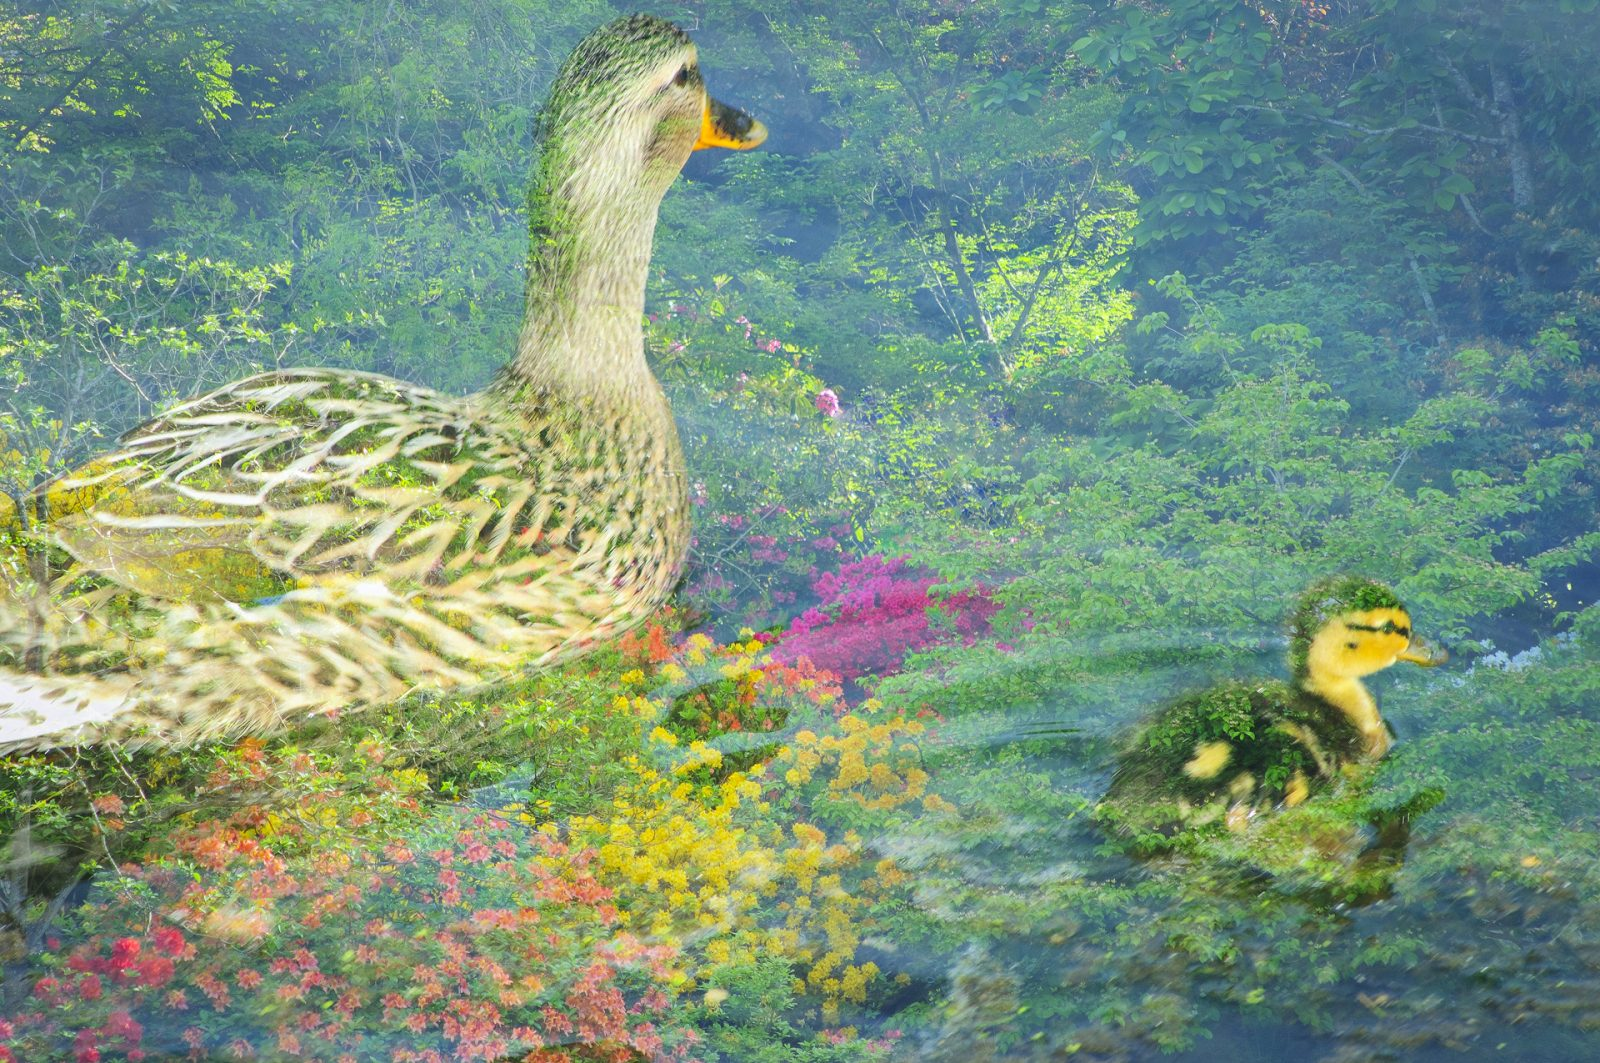 Mother and Duckling at Crystal Springs Rhododendron Garden